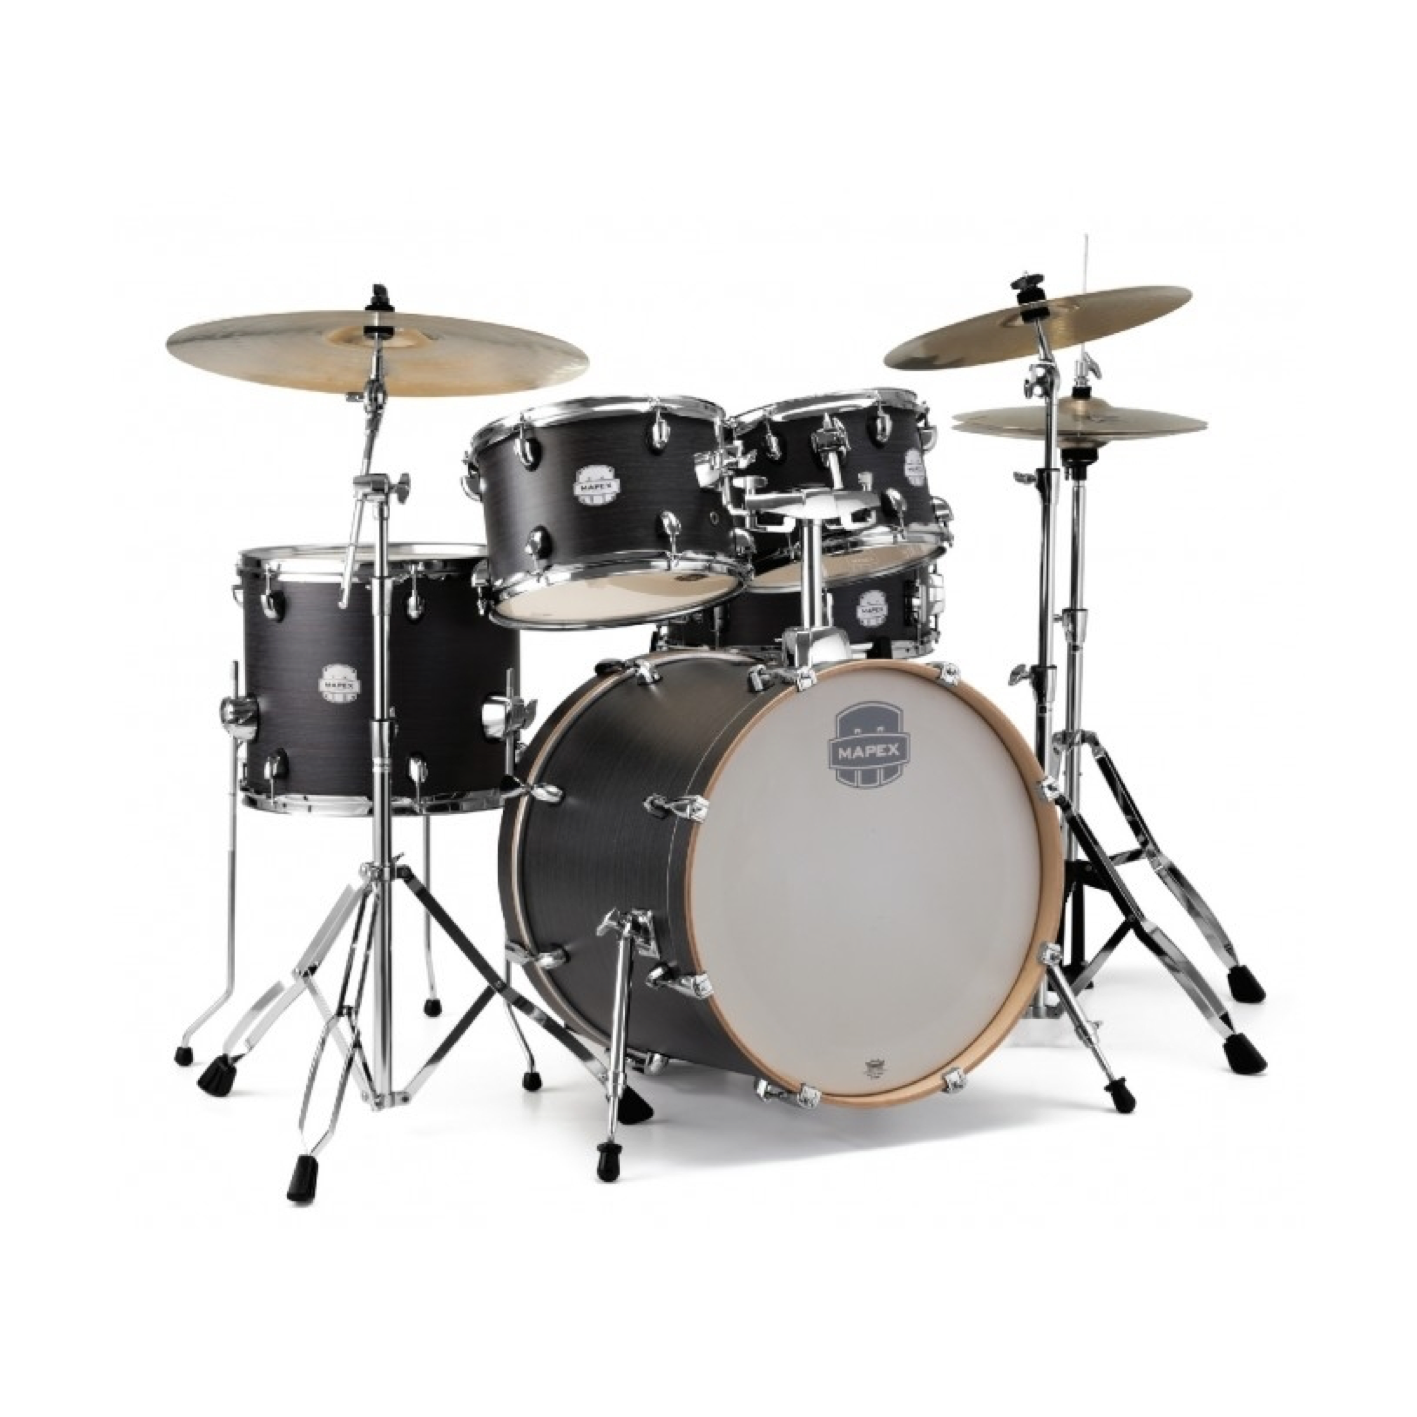 """Mapex Storm 20"""" Fast Fusion Drum Kit Wood Grain (Cymbals Not Included)"""